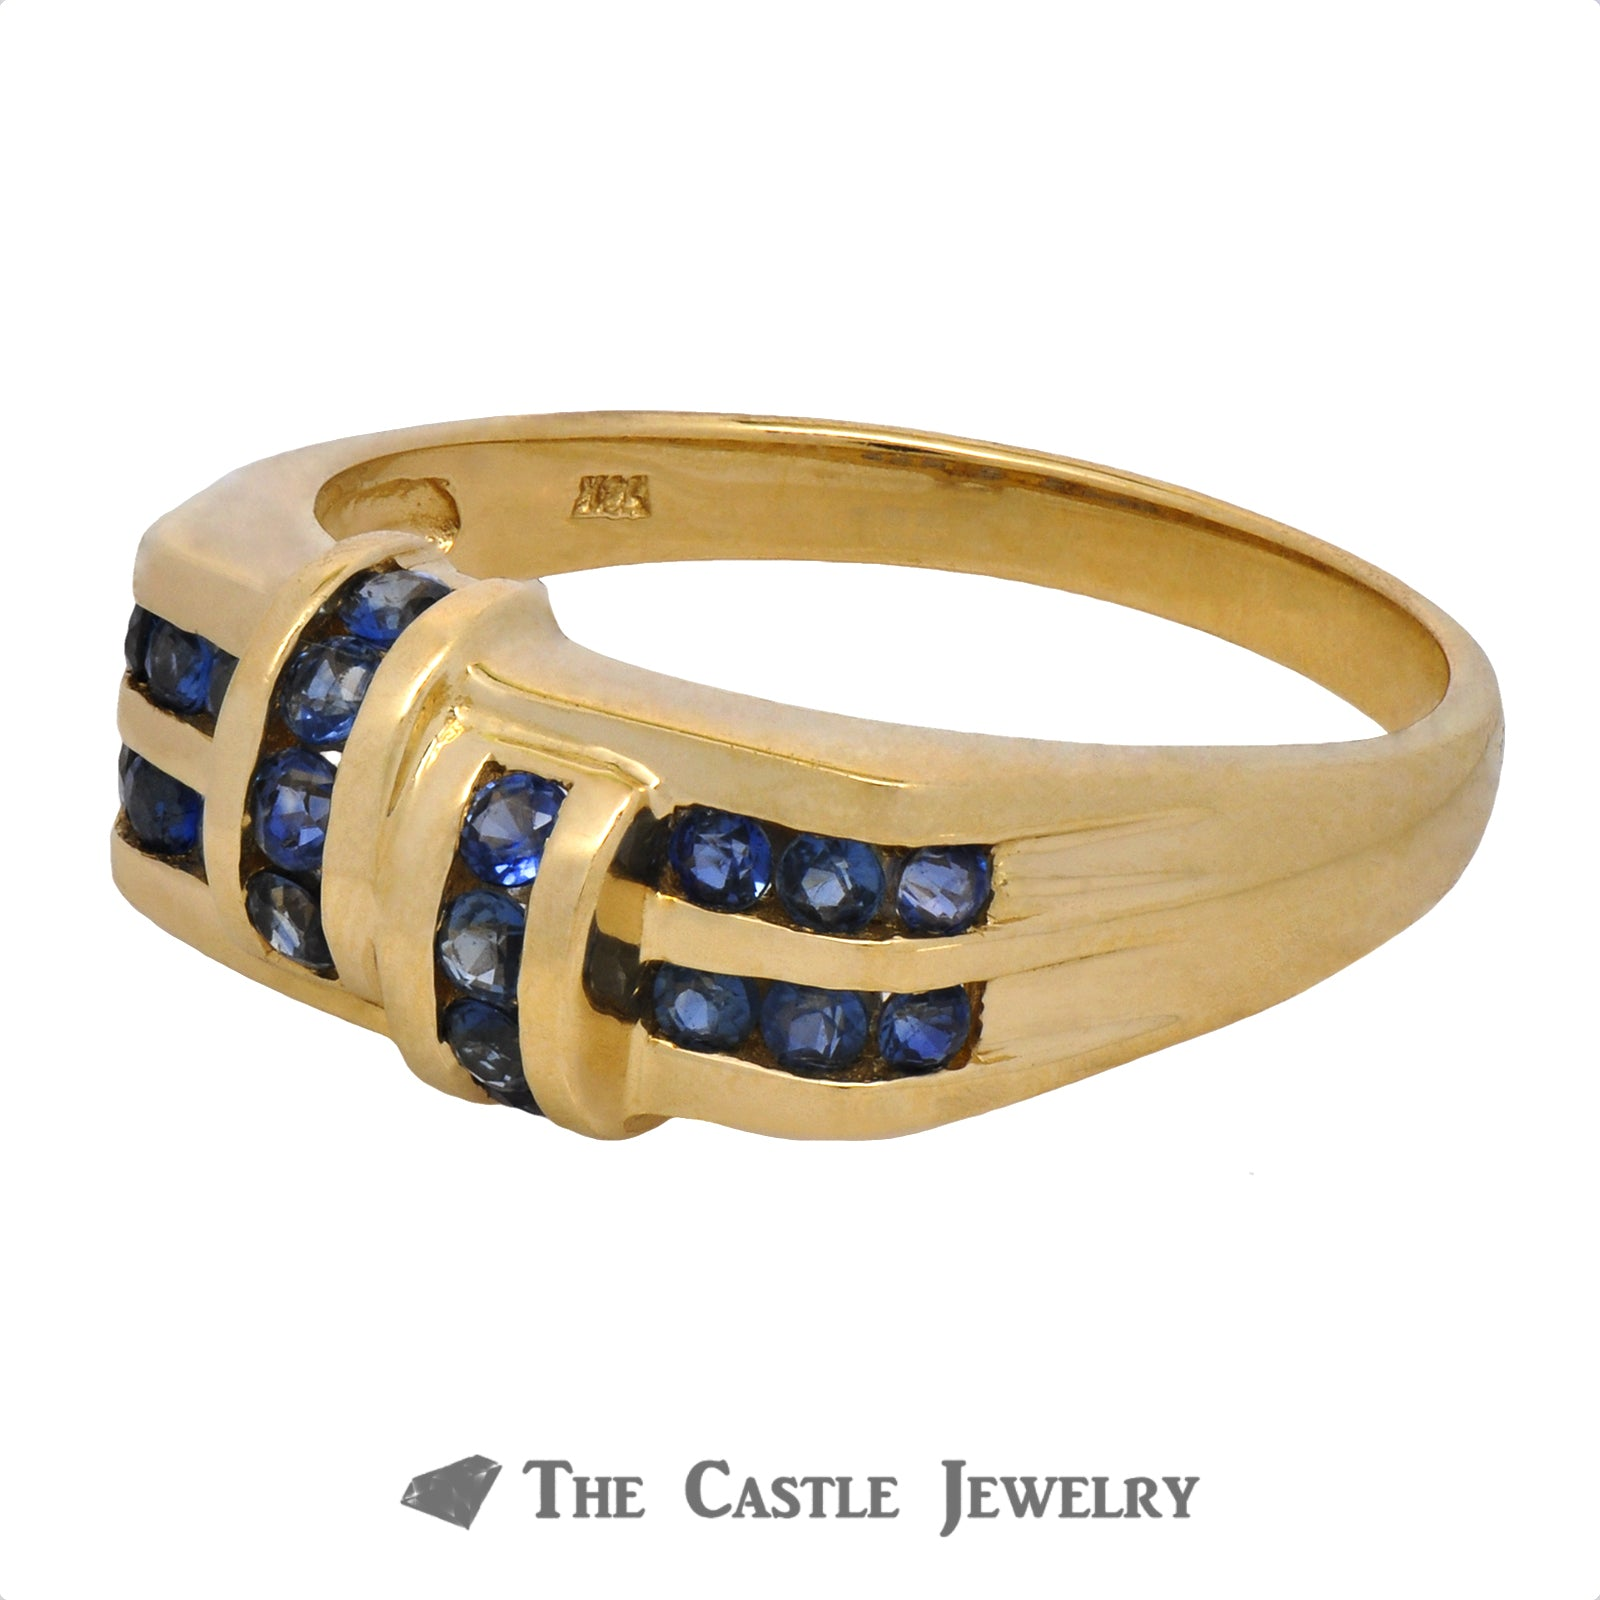 Unique Yellow Gold Ring with Rows of Sapphires-2